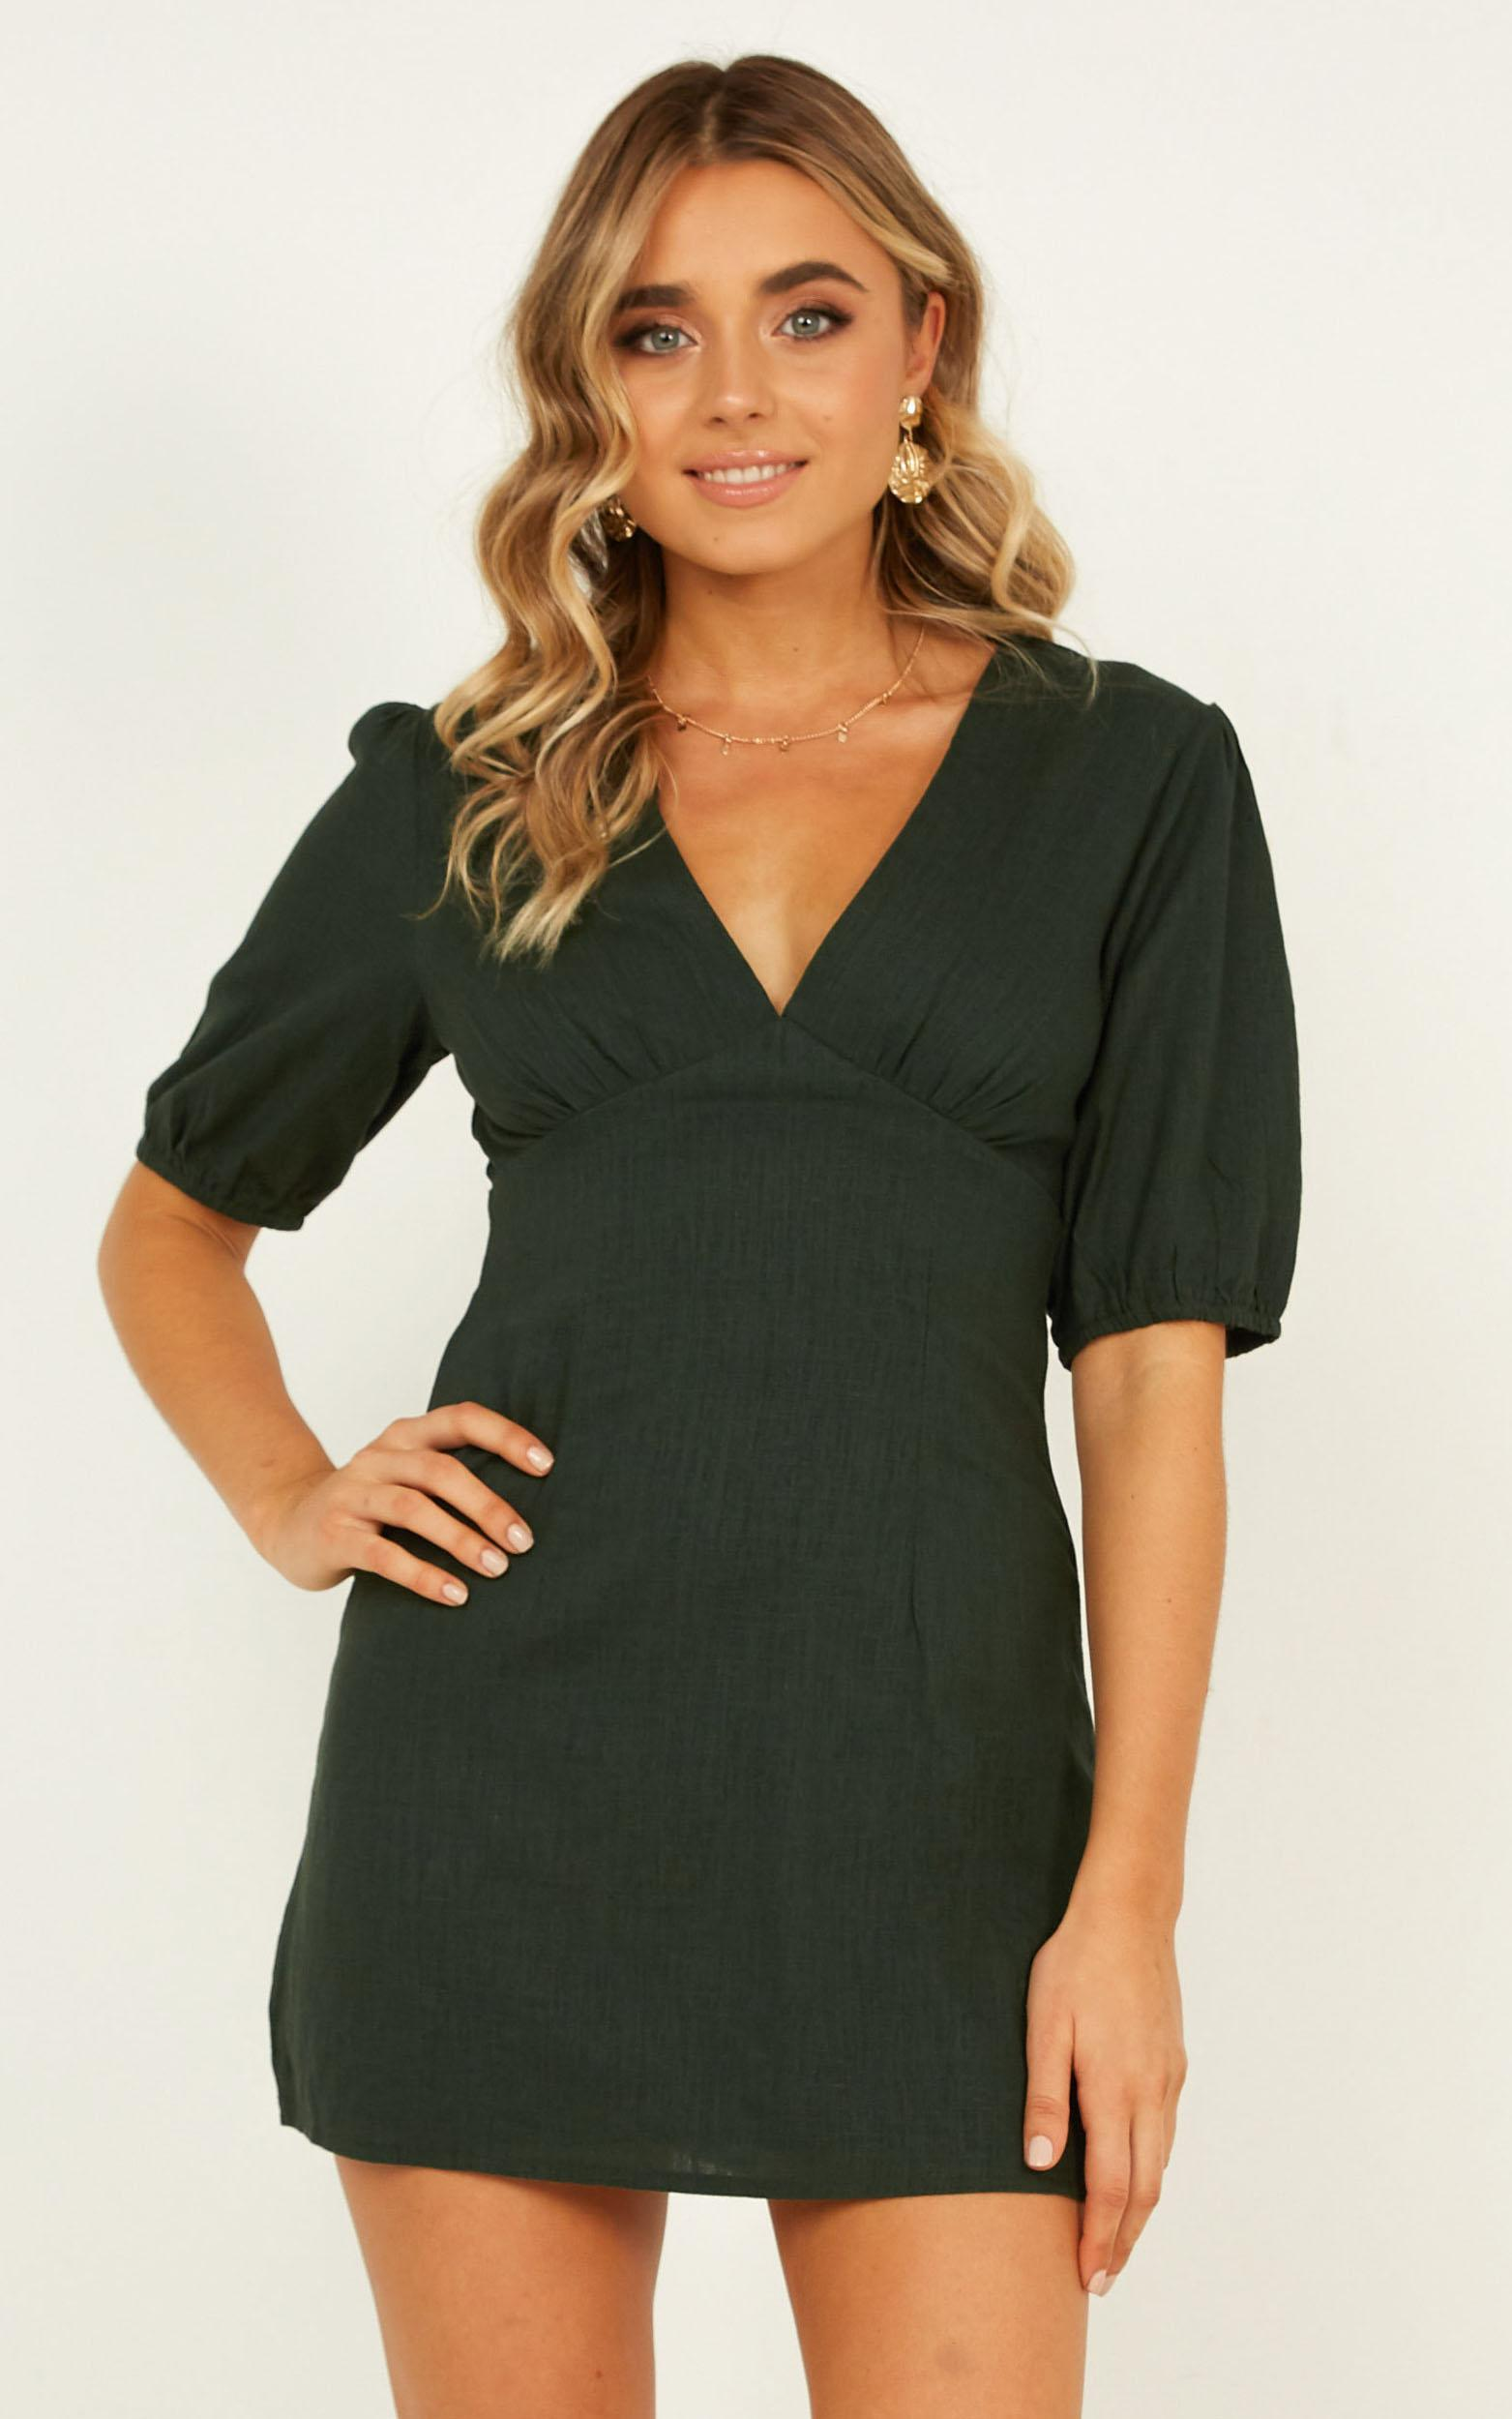 Endless Power Dress In emerald linen look - 14 (XL), Green, hi-res image number null